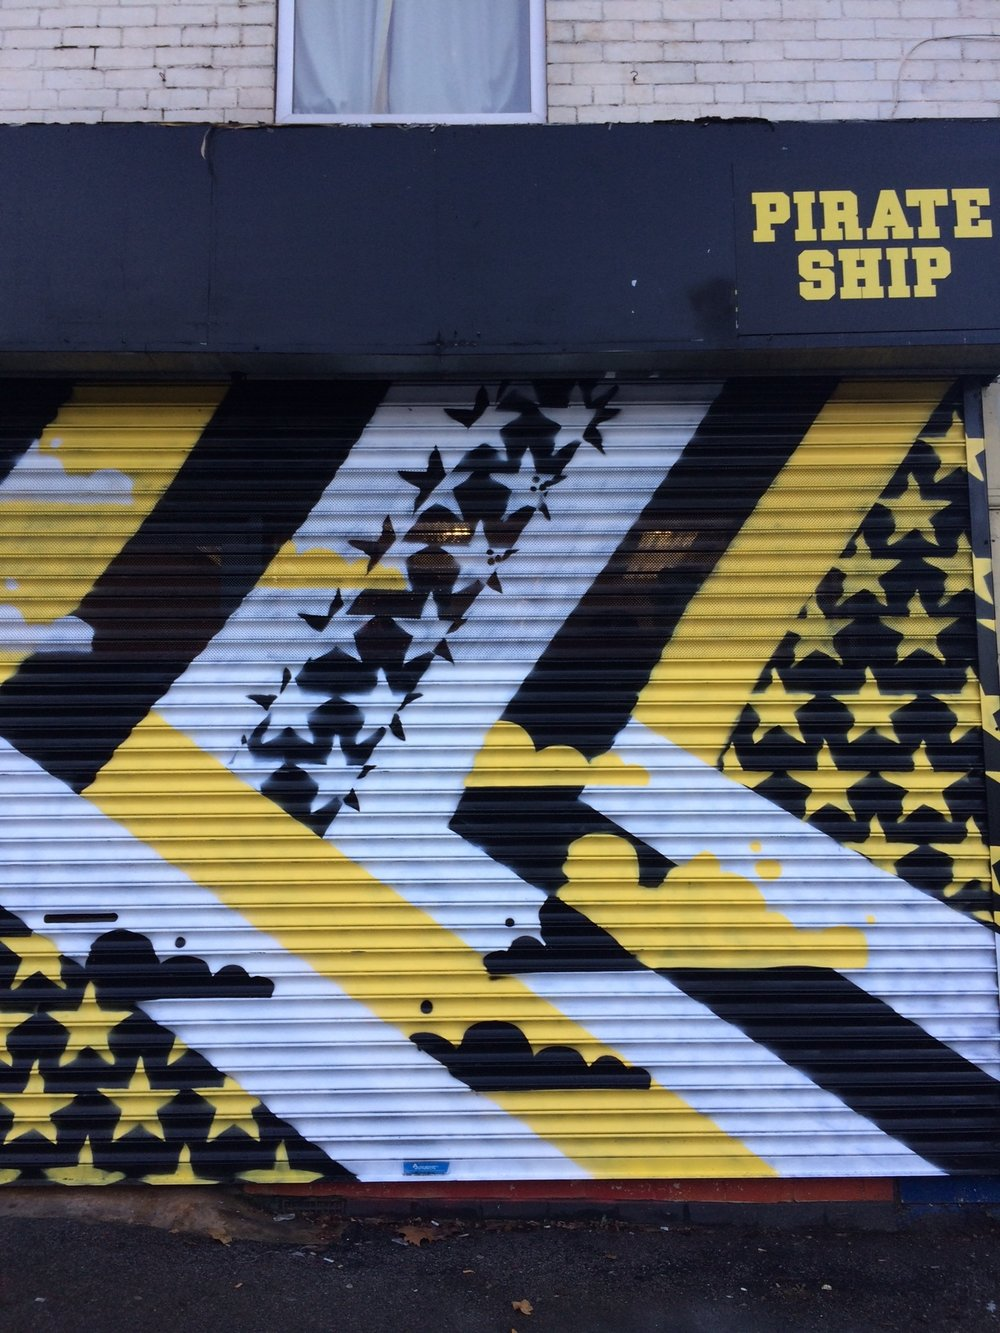 Just over the road is pirate ship which specialises in vintage sportswear og streetwear graffiti supplies their shutter is painted by mistone